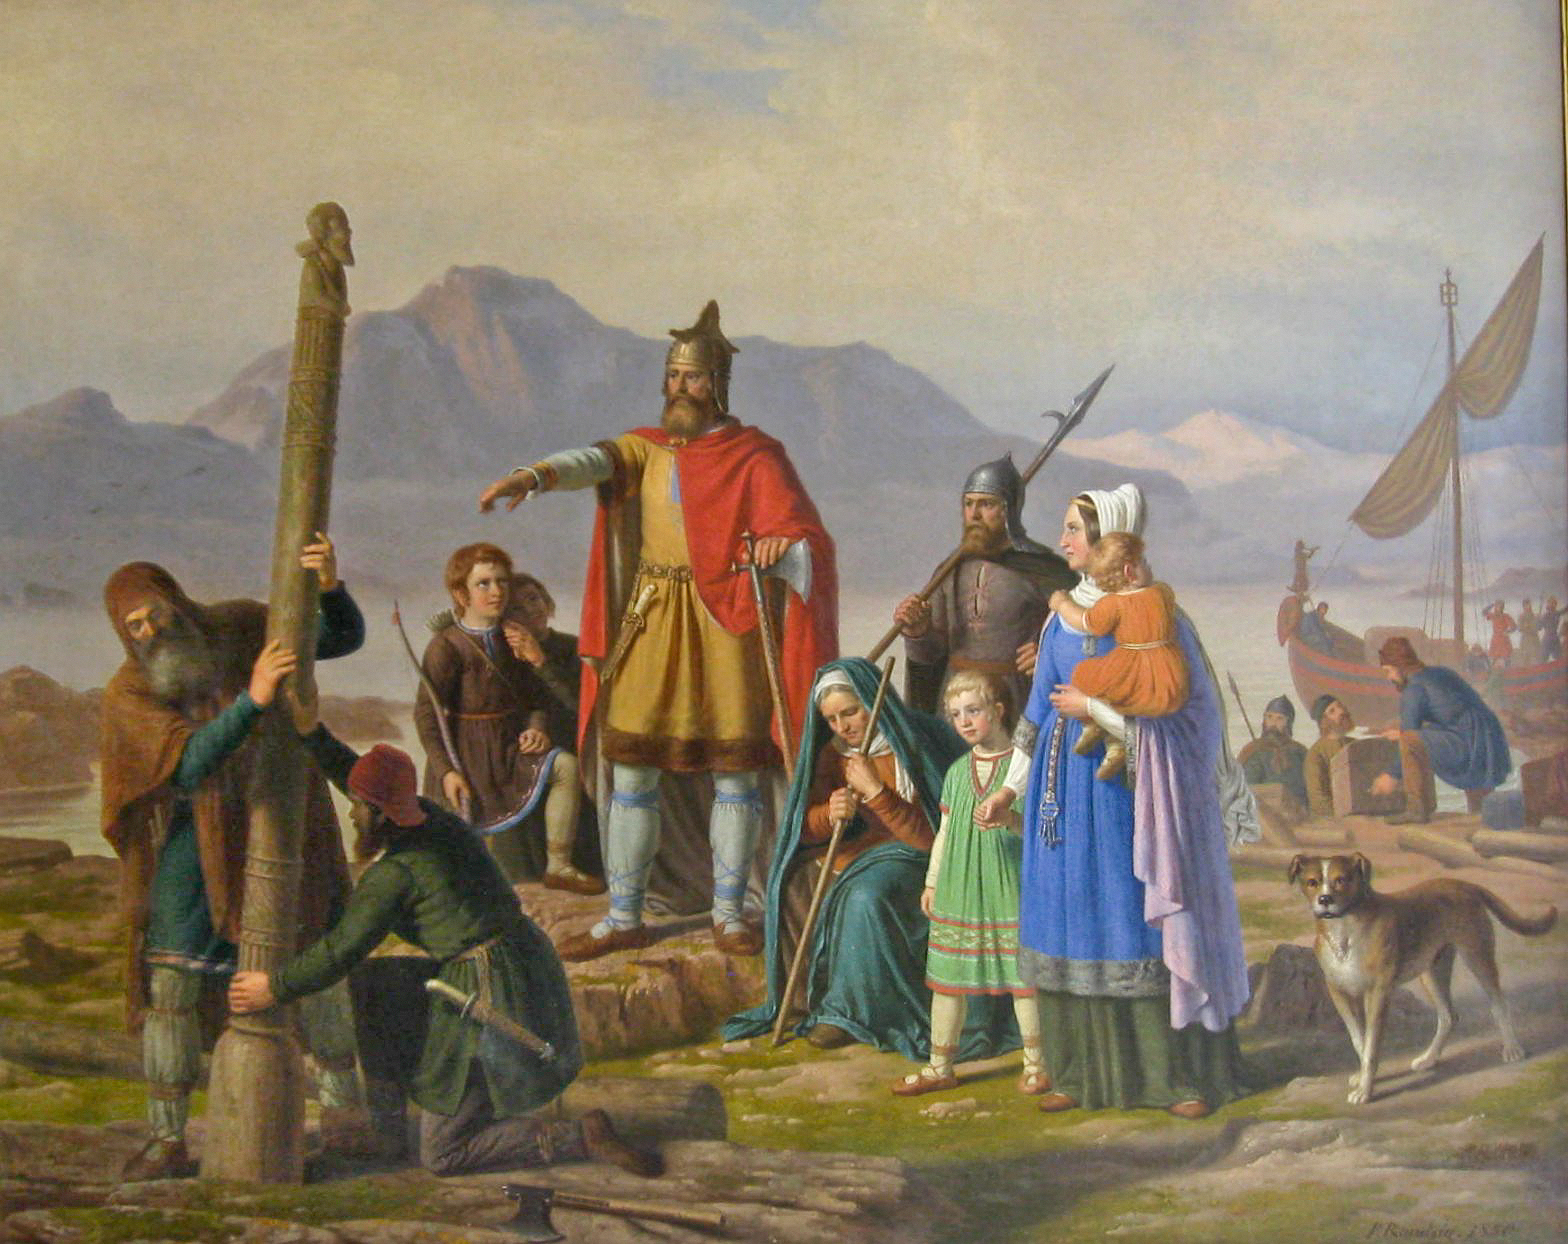 An (1850) depiction of the first medieval settlers arriving in [[Iceland